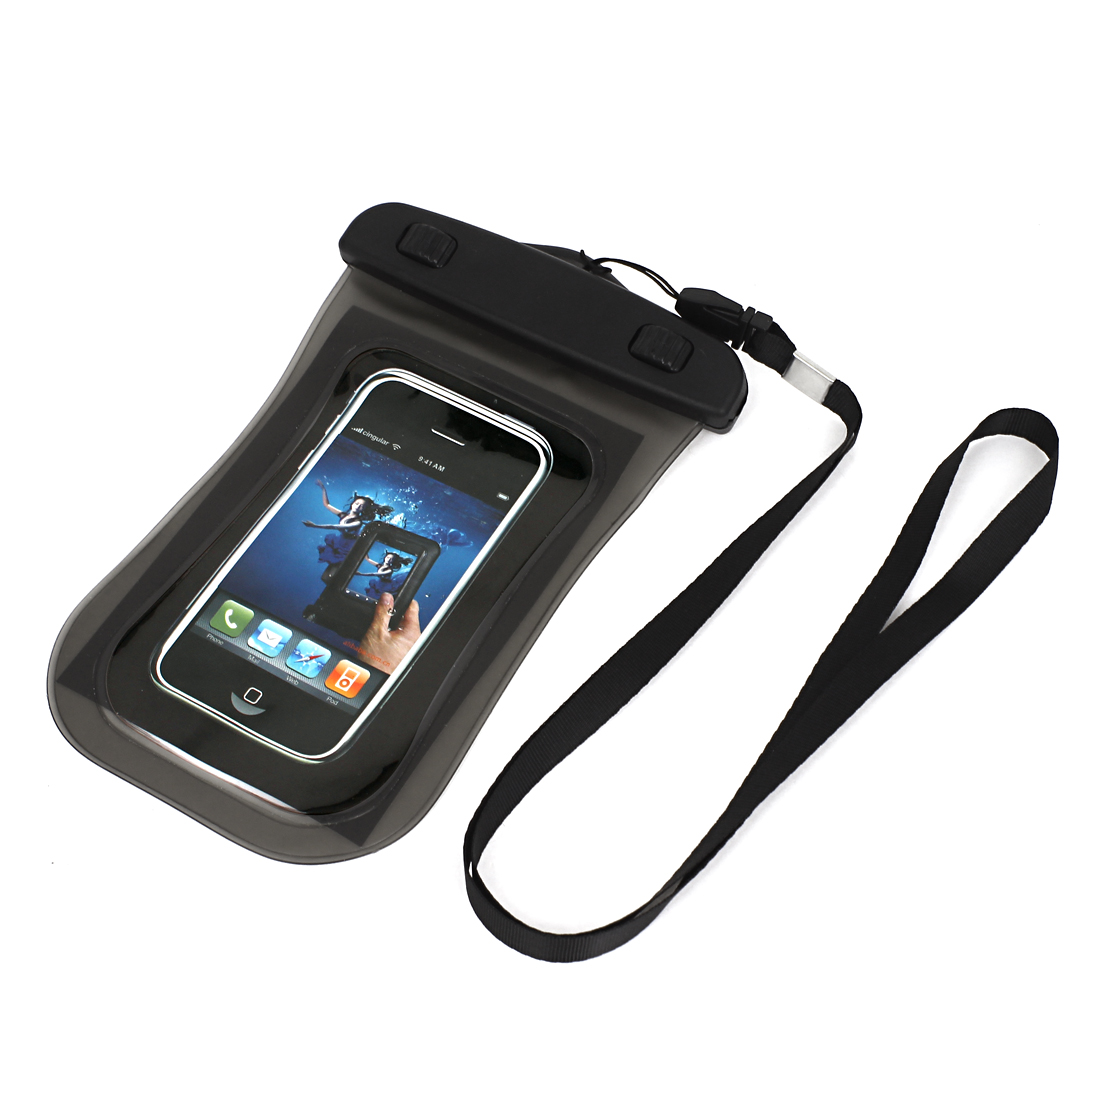 Transpa Waterproof Case Dry Bag Protective Cover Pouch Gray For Cell Phone